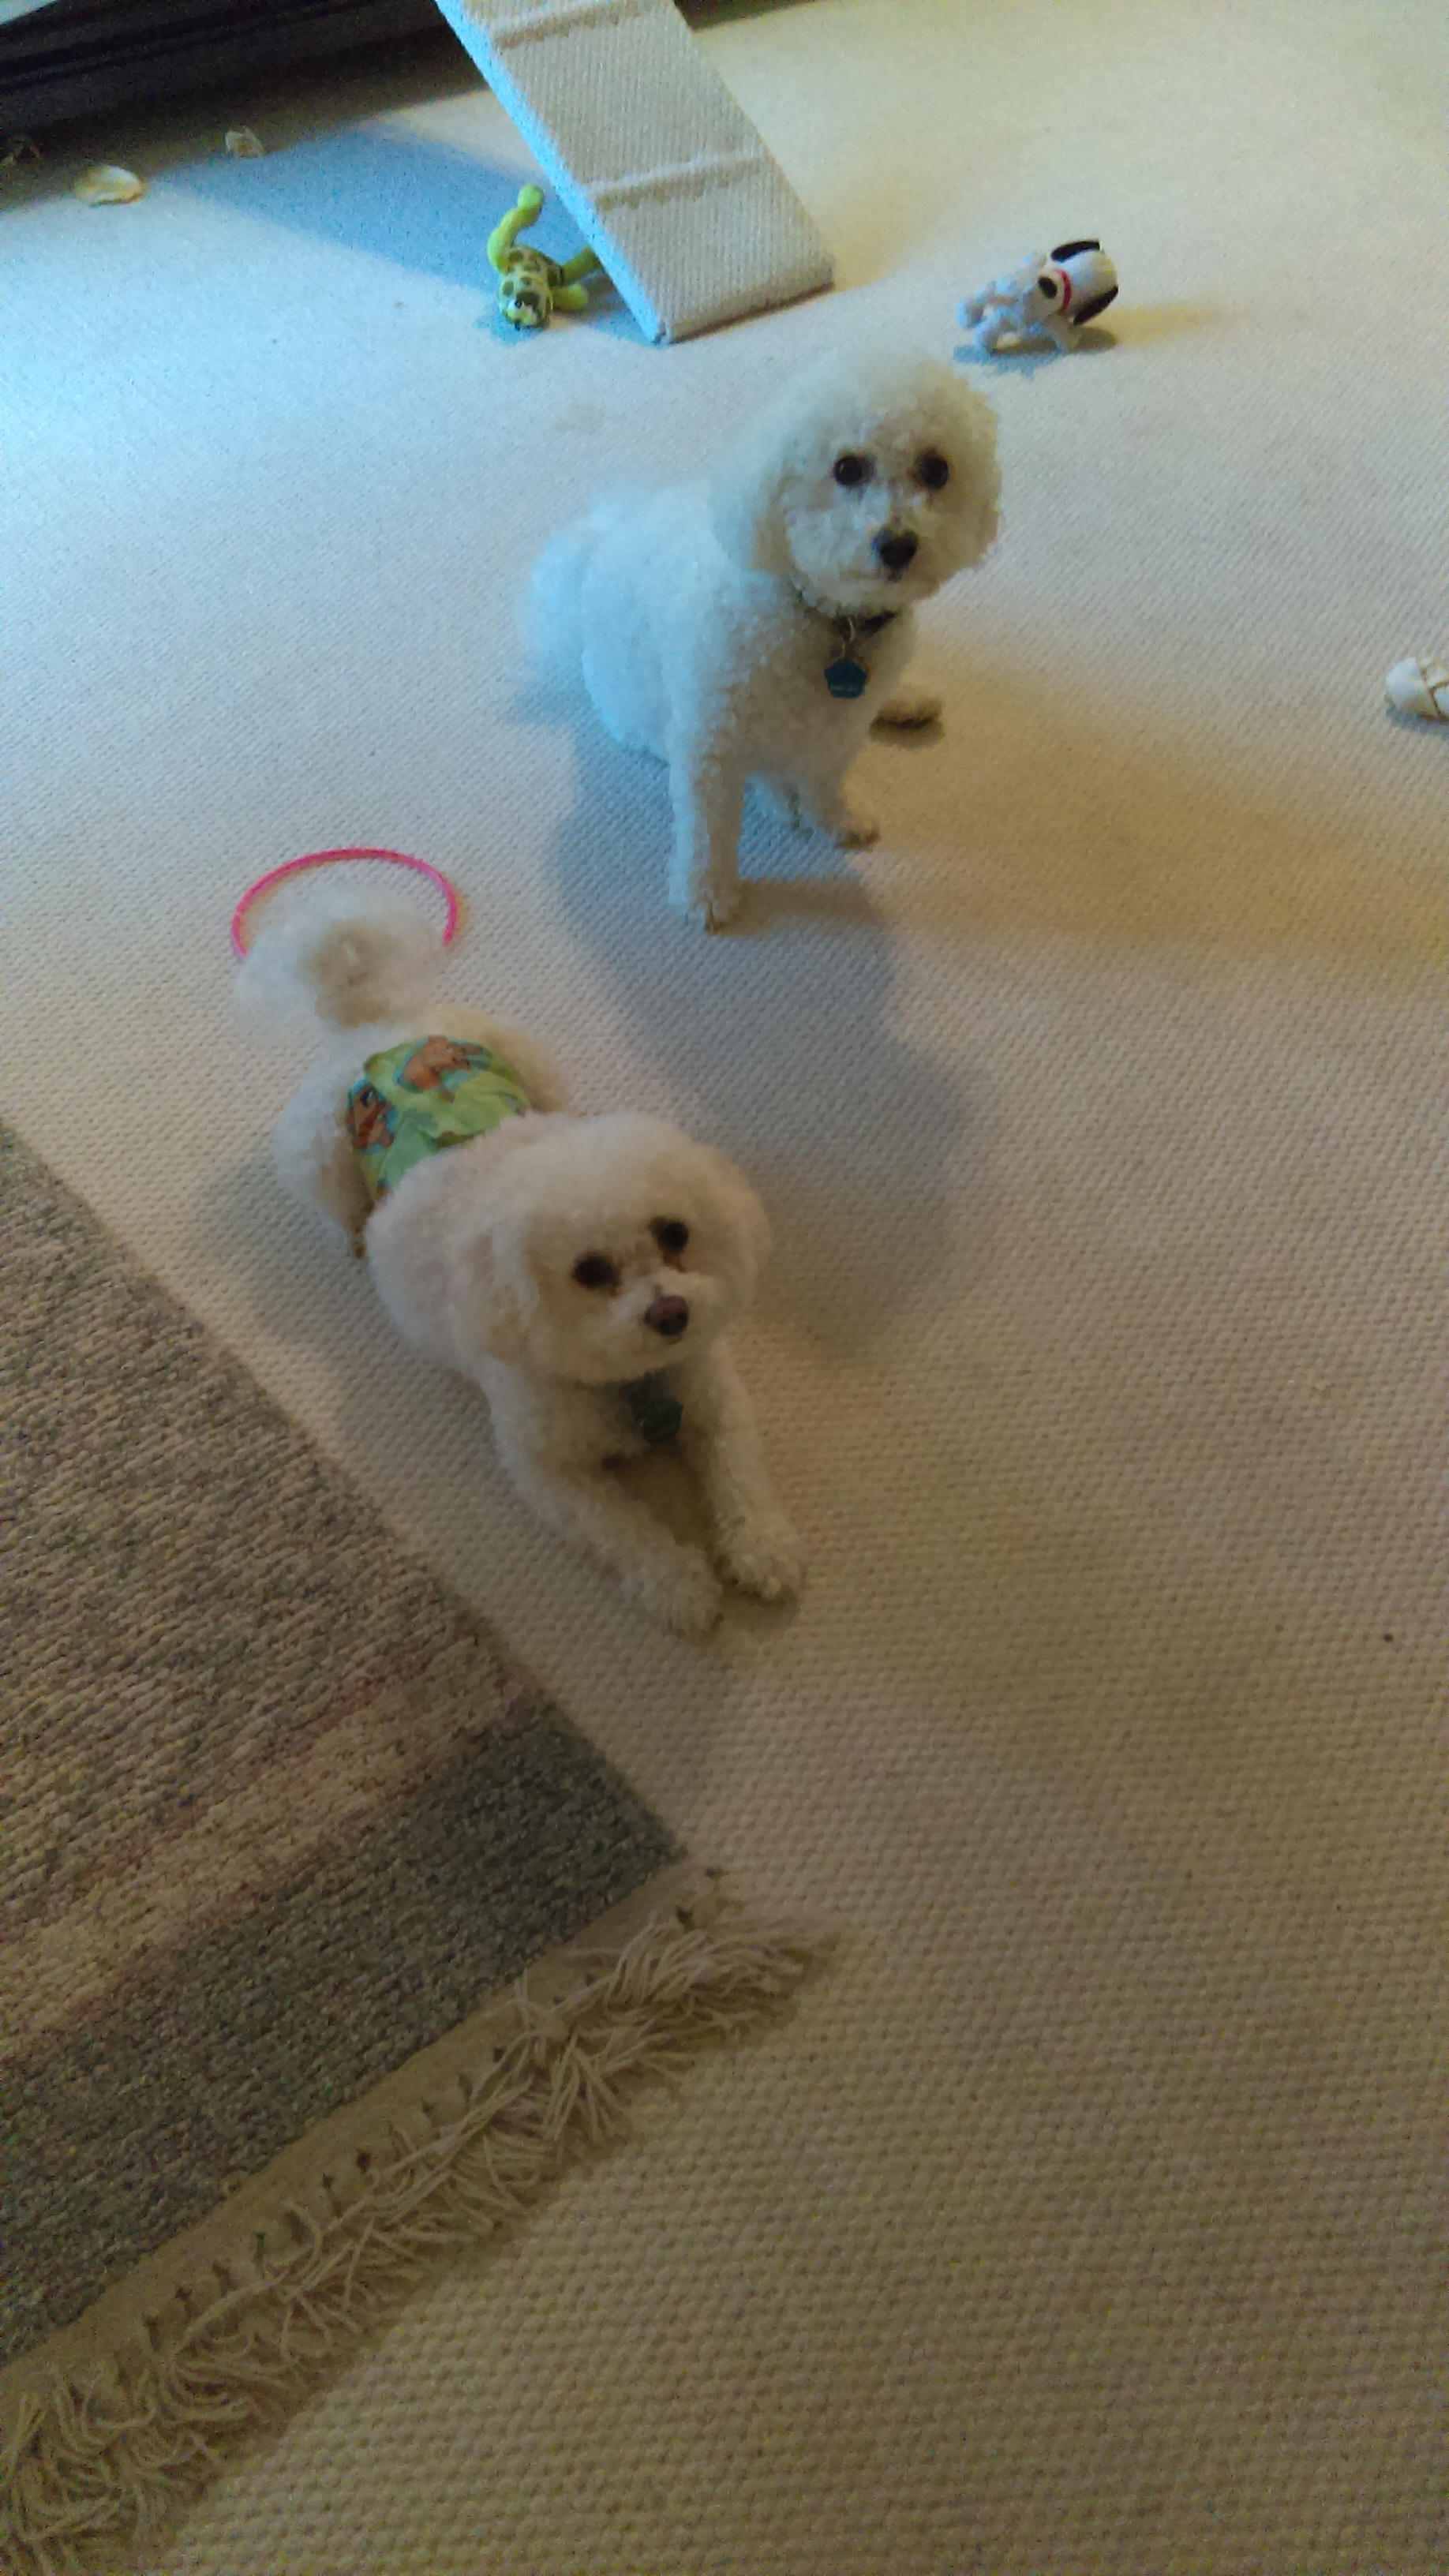 Here's Kirby and Ripley. They wear diapers.